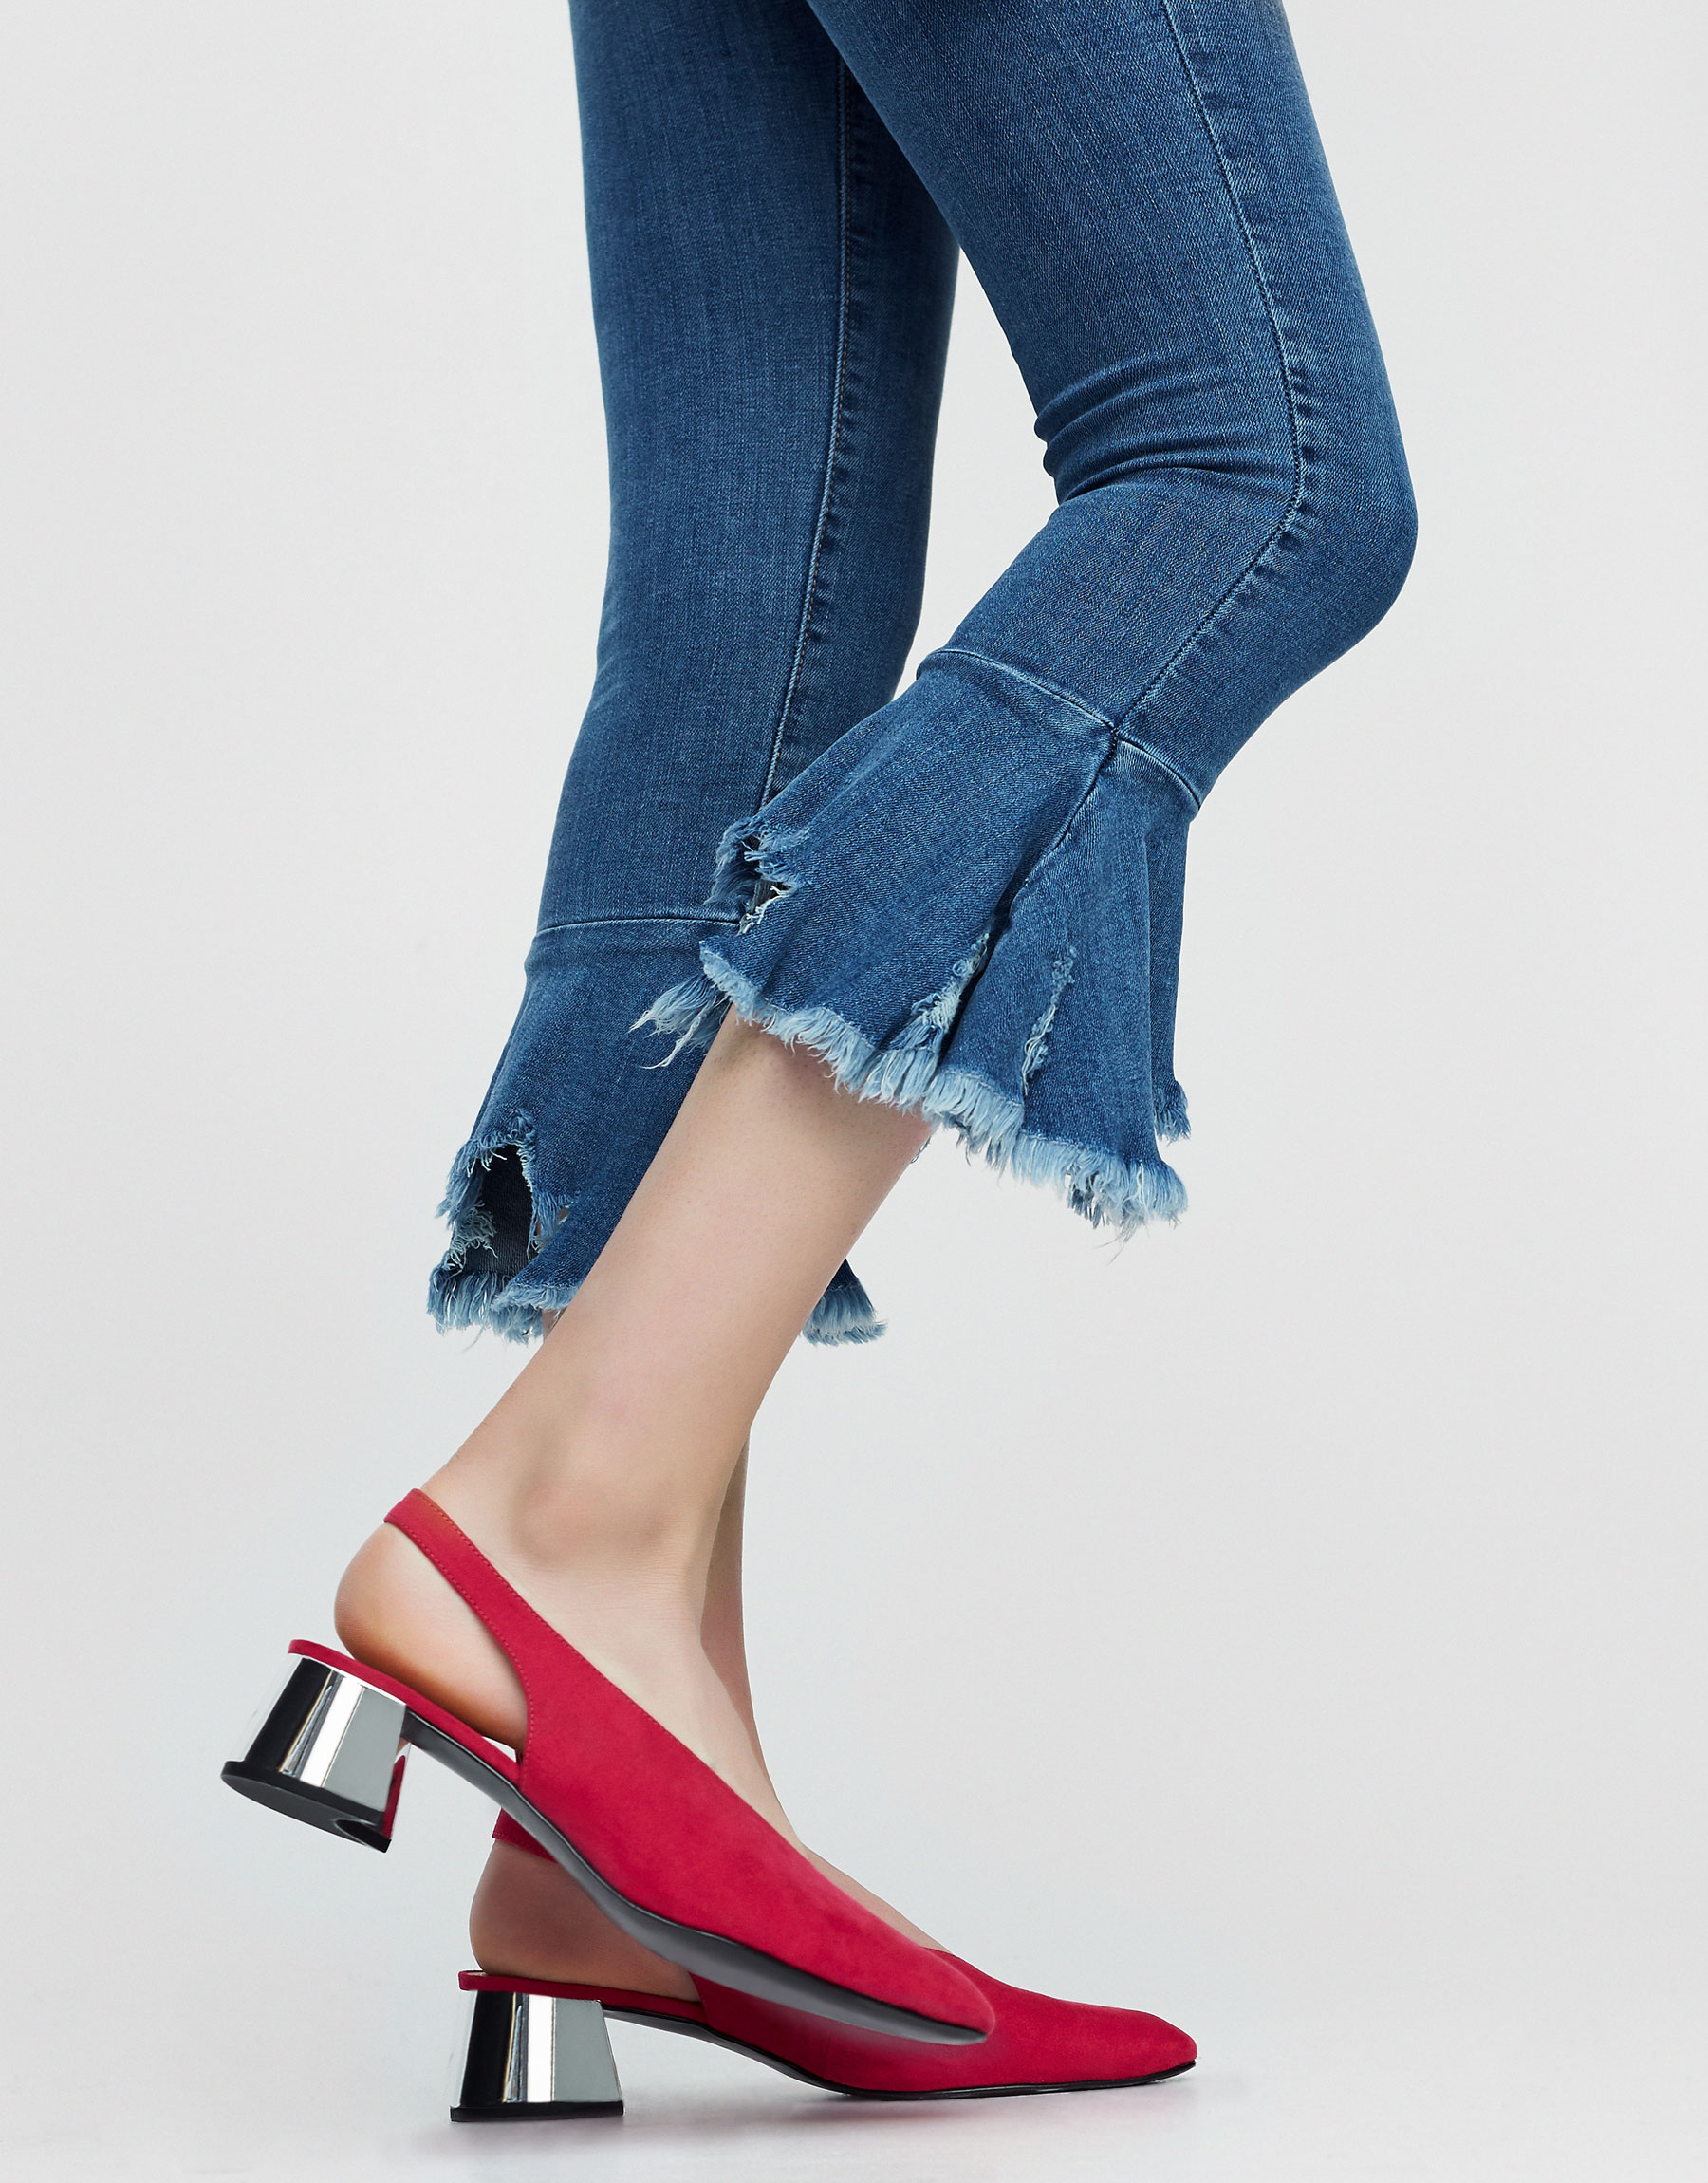 High heel shoes with low-cut upper